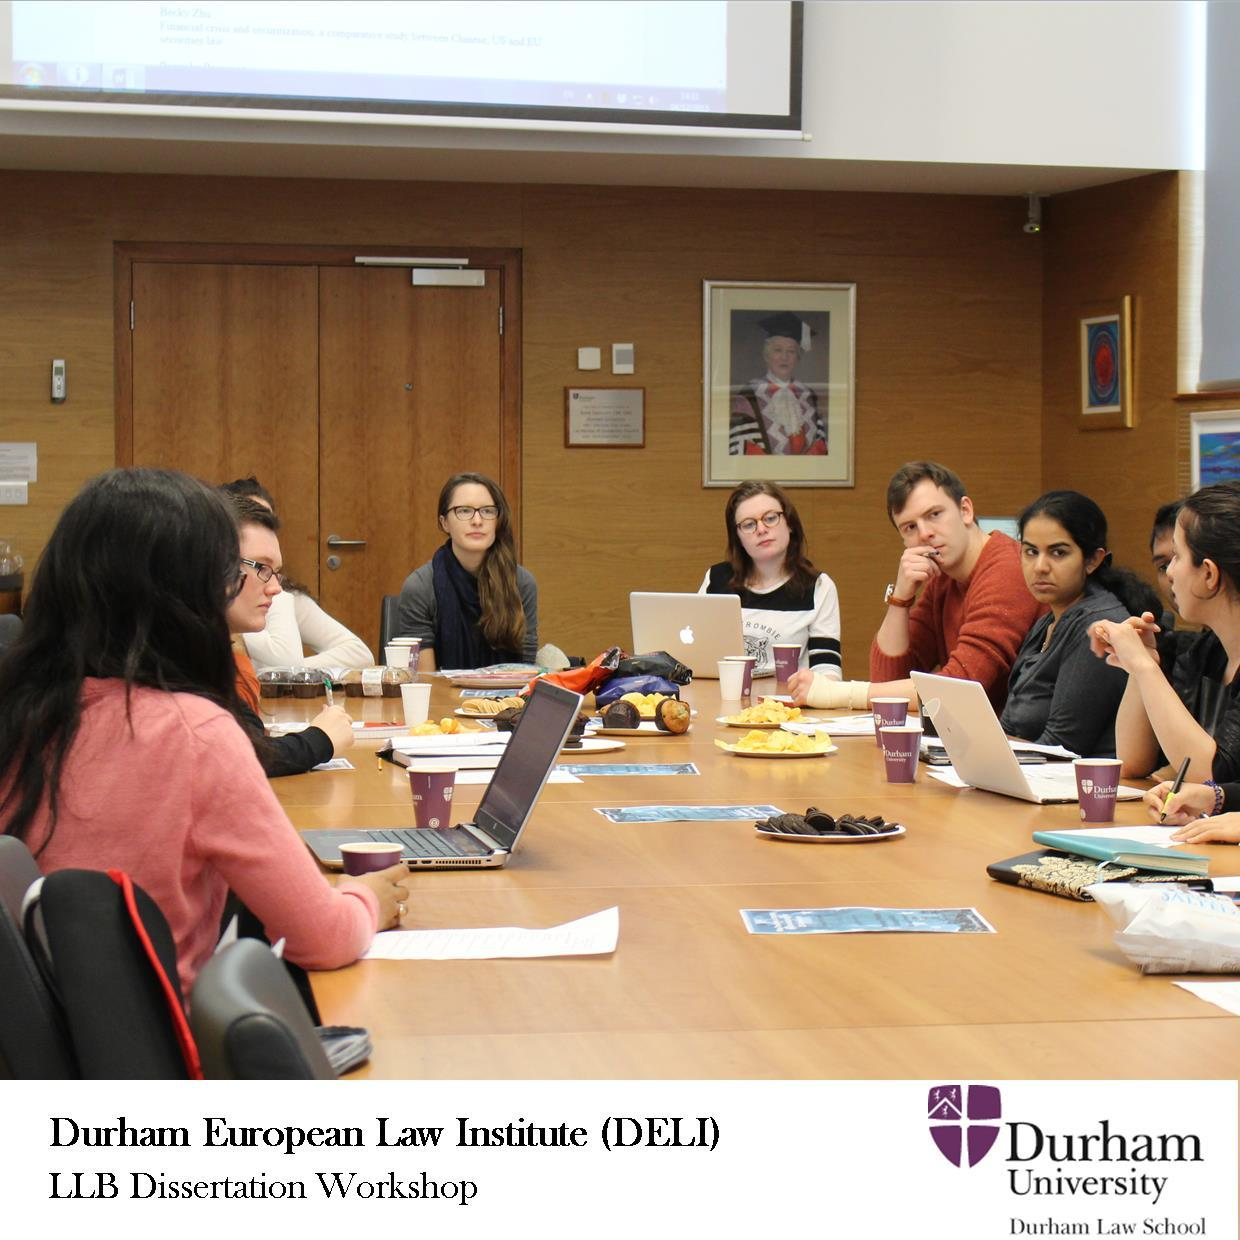 durham phd thesis Graduate school durham thesis submission once you've placed your order, we check all our available writers whose skills match your requirements and choose the one.